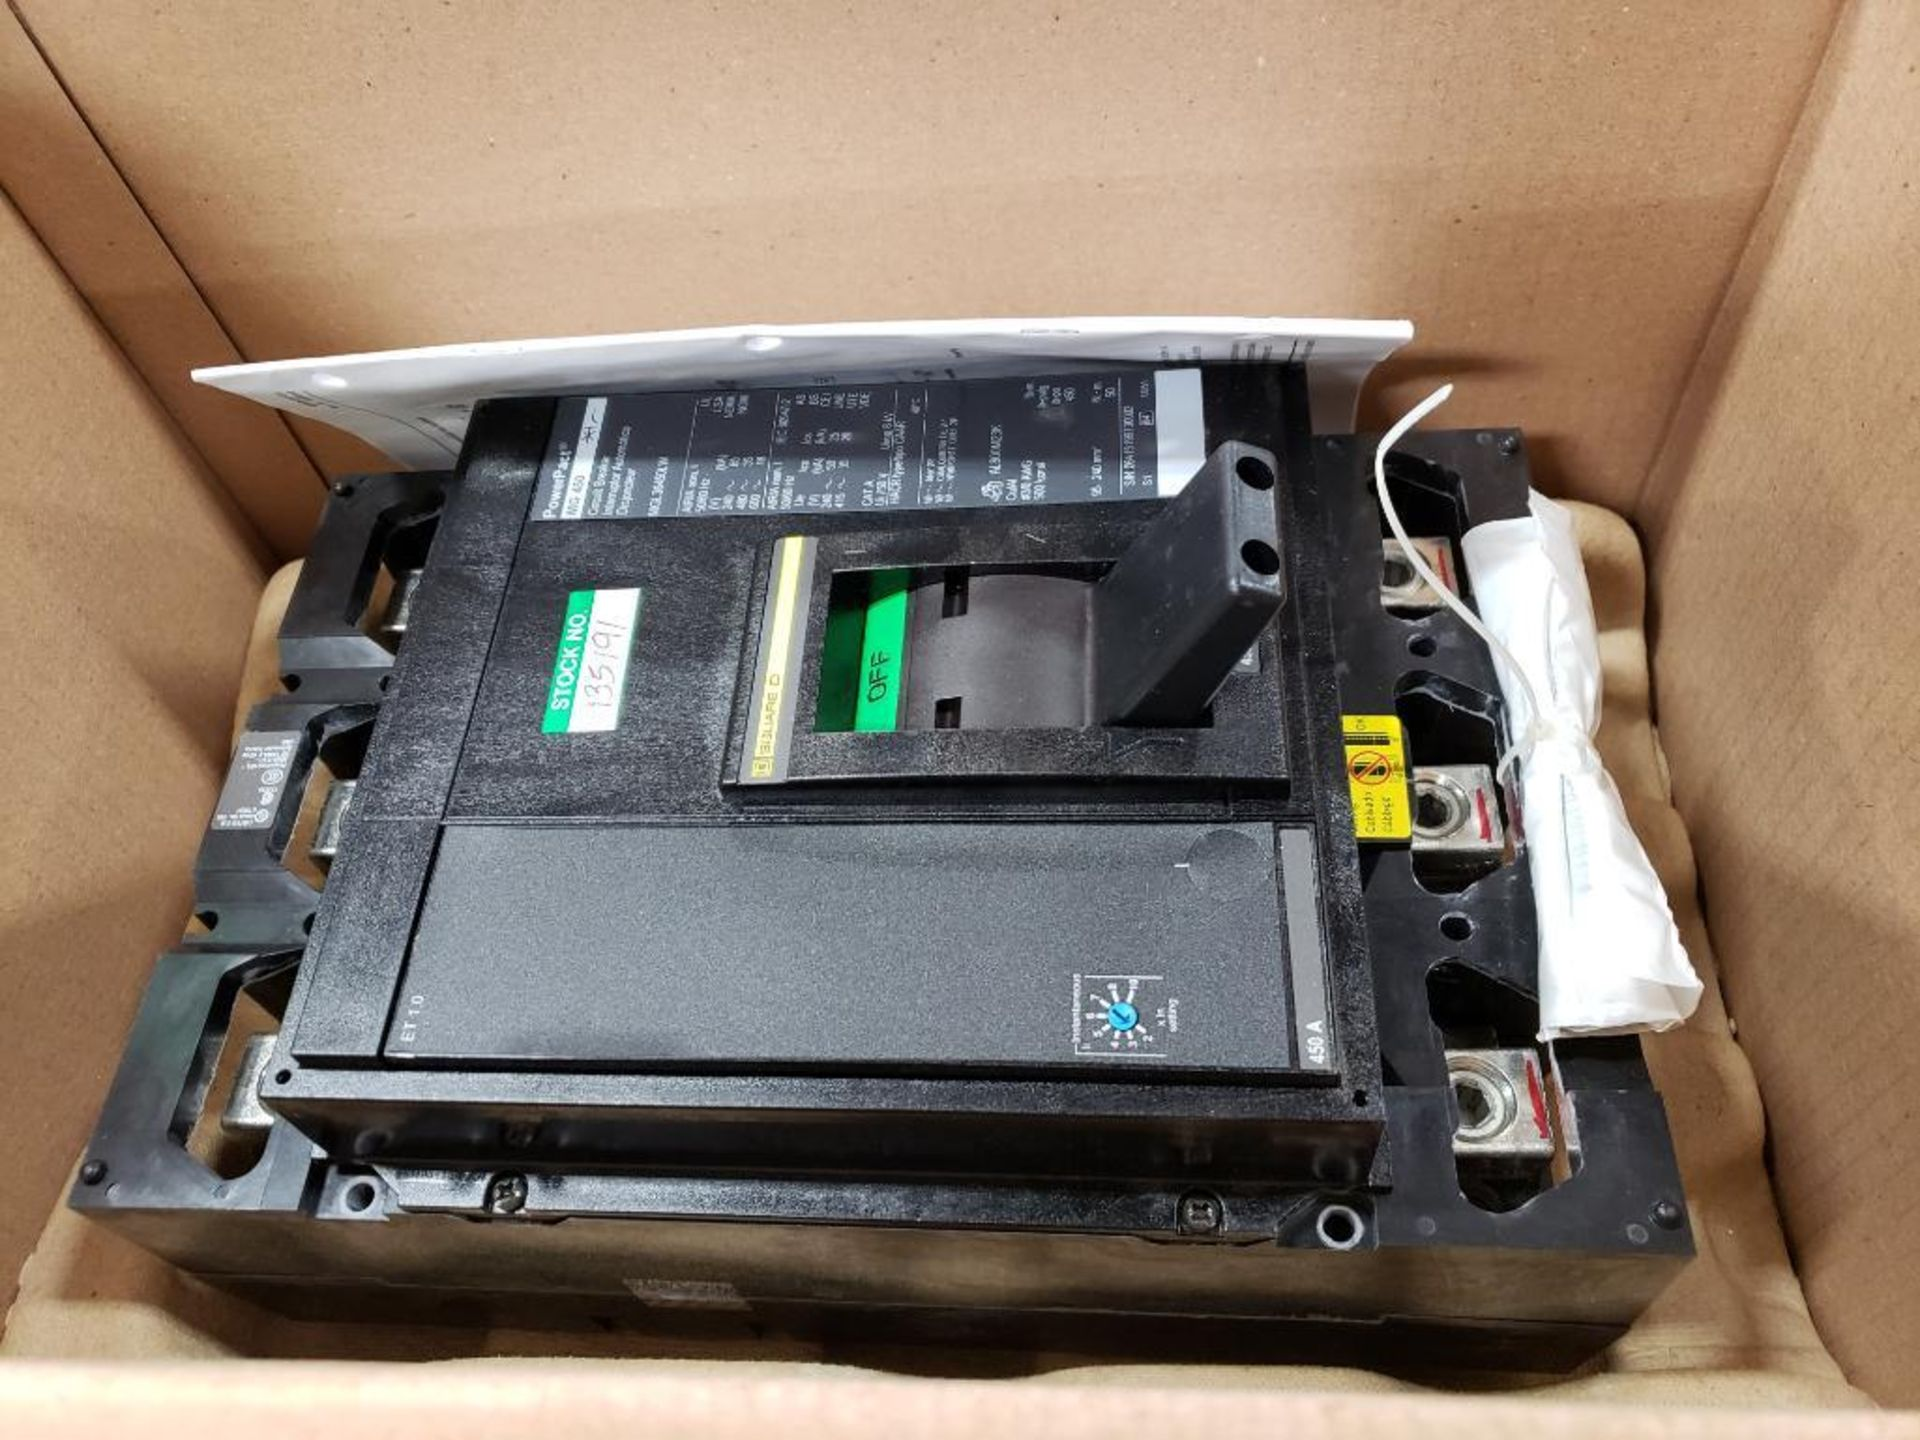 Square D PowerPact breaker. 450 amp 3 phase. Model MGL36450LW. New in box. - Image 2 of 4